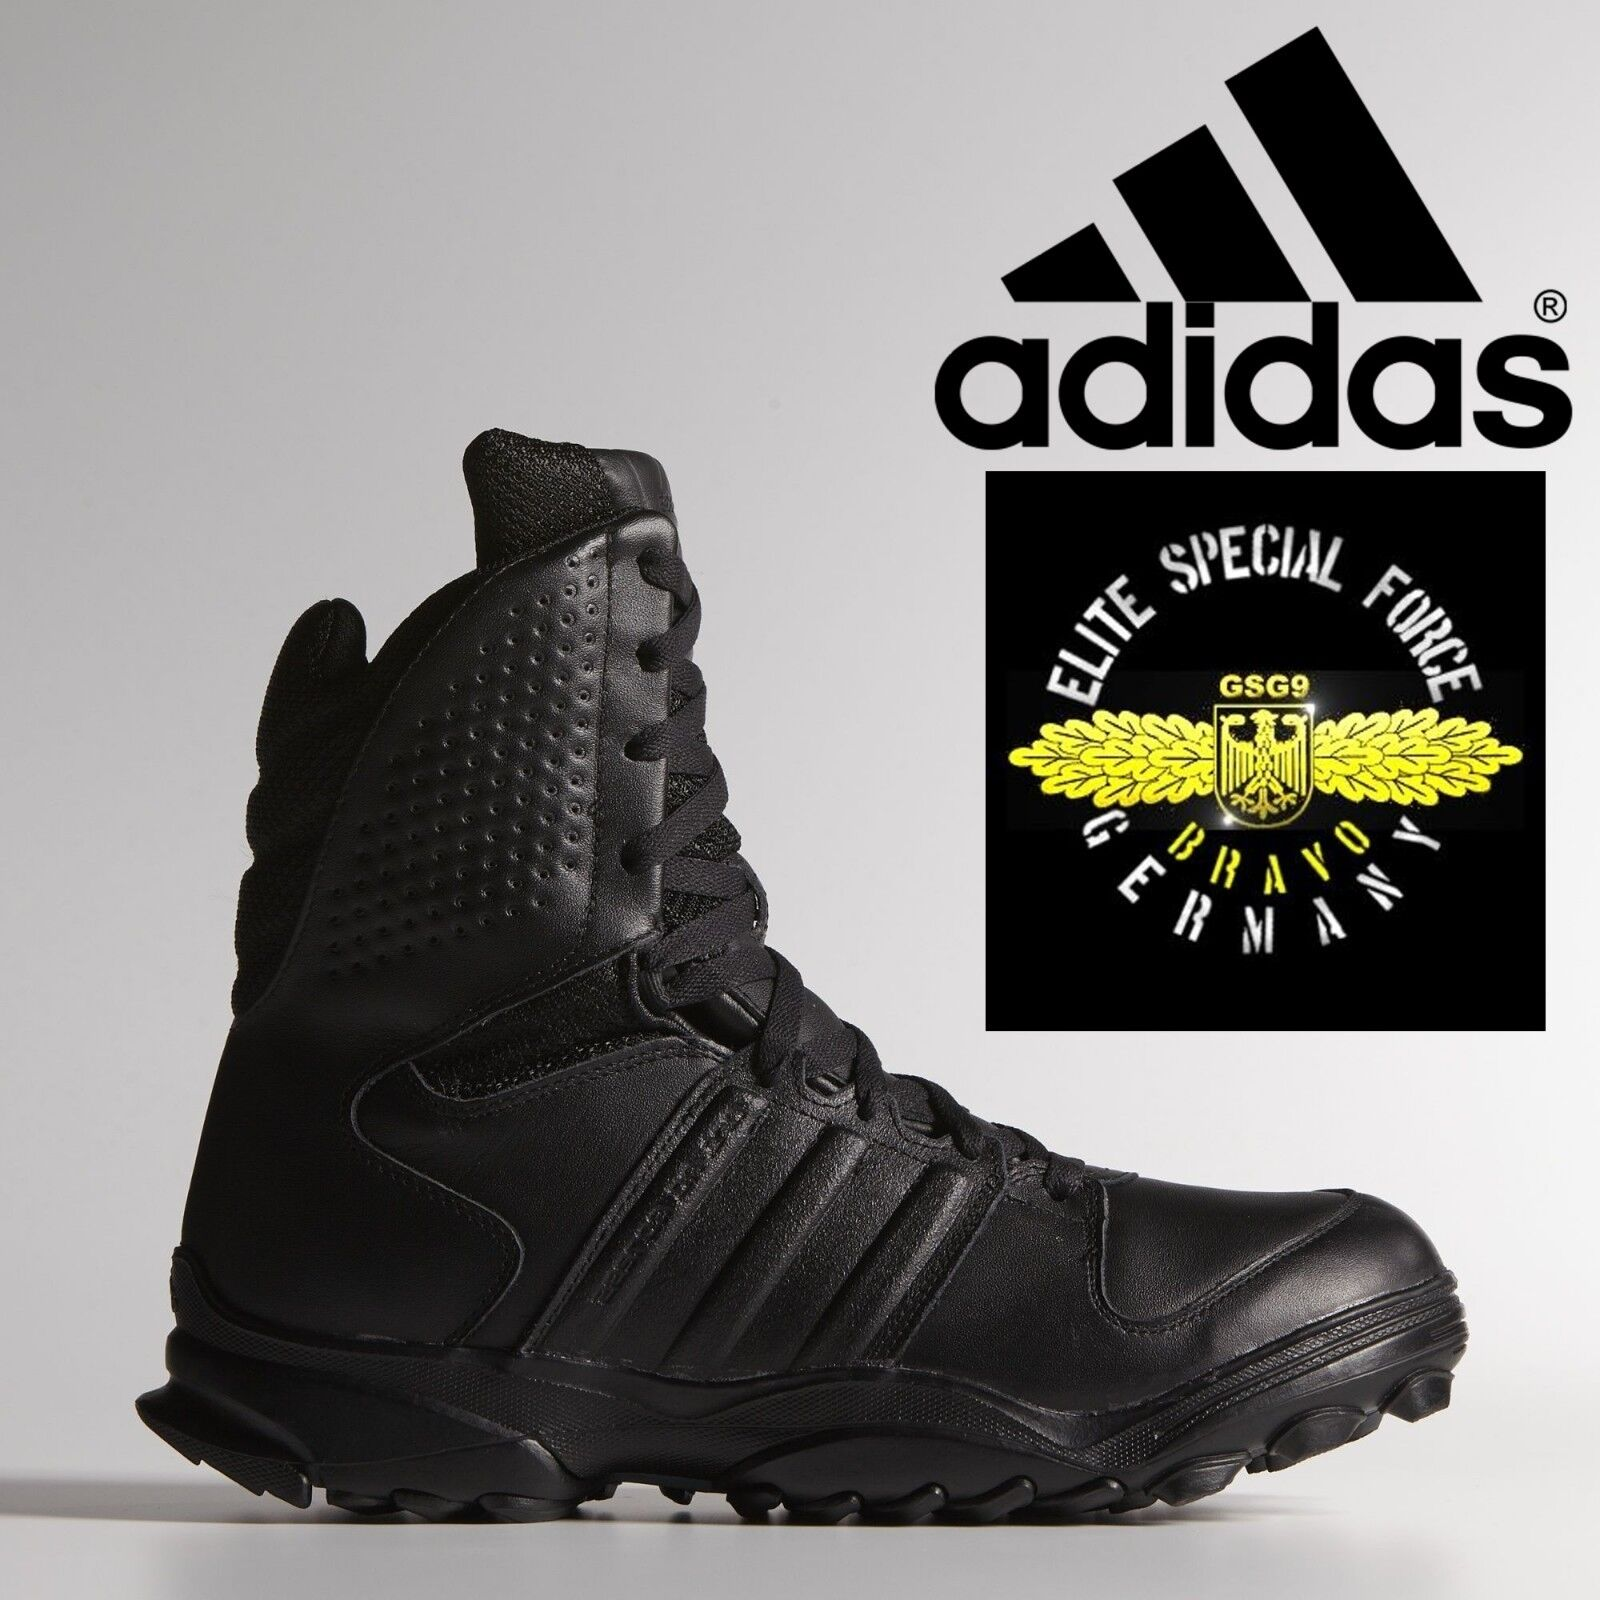 0bbaba7711d adidas GSG 9.2 Combat Boots Military SWAT German Police Shoes Black Leather